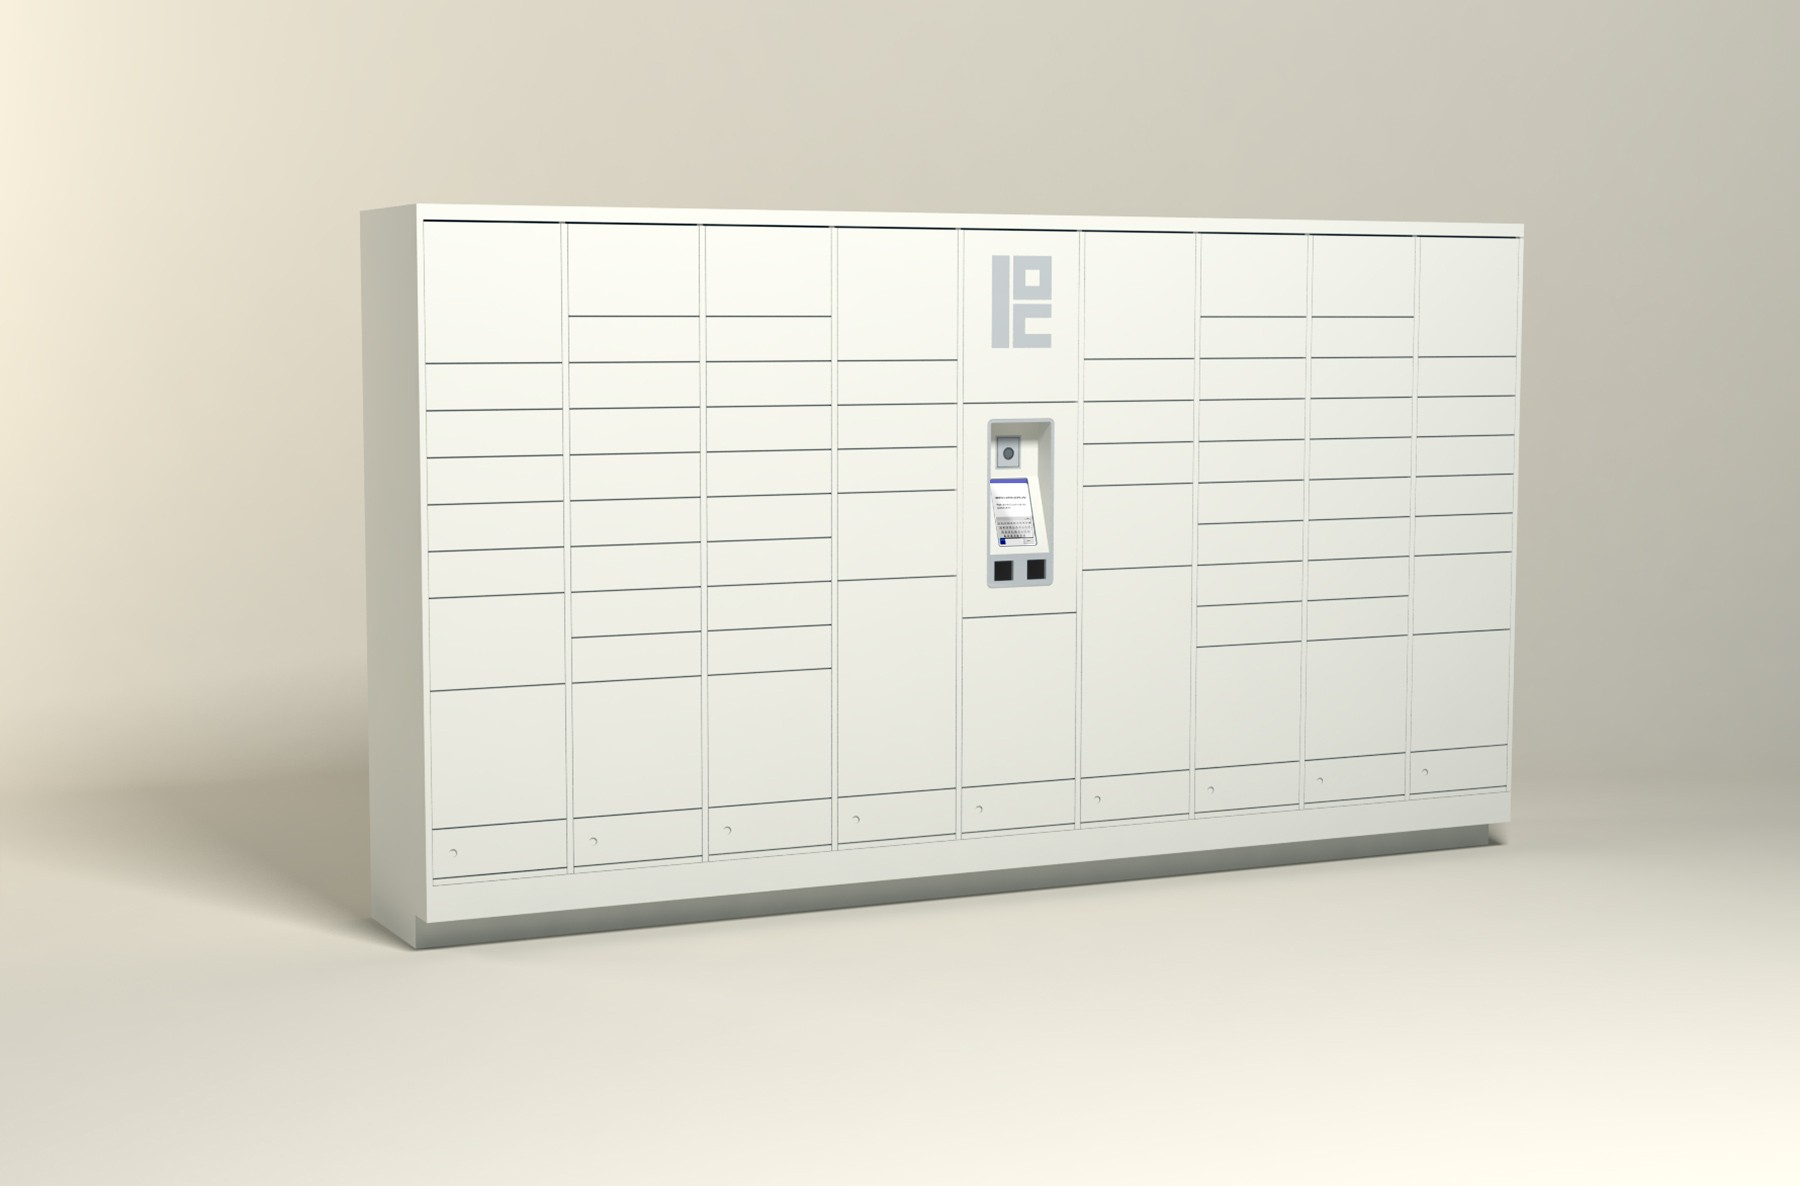 250 Unit - 70 Total Openings - Steel Smart Locker